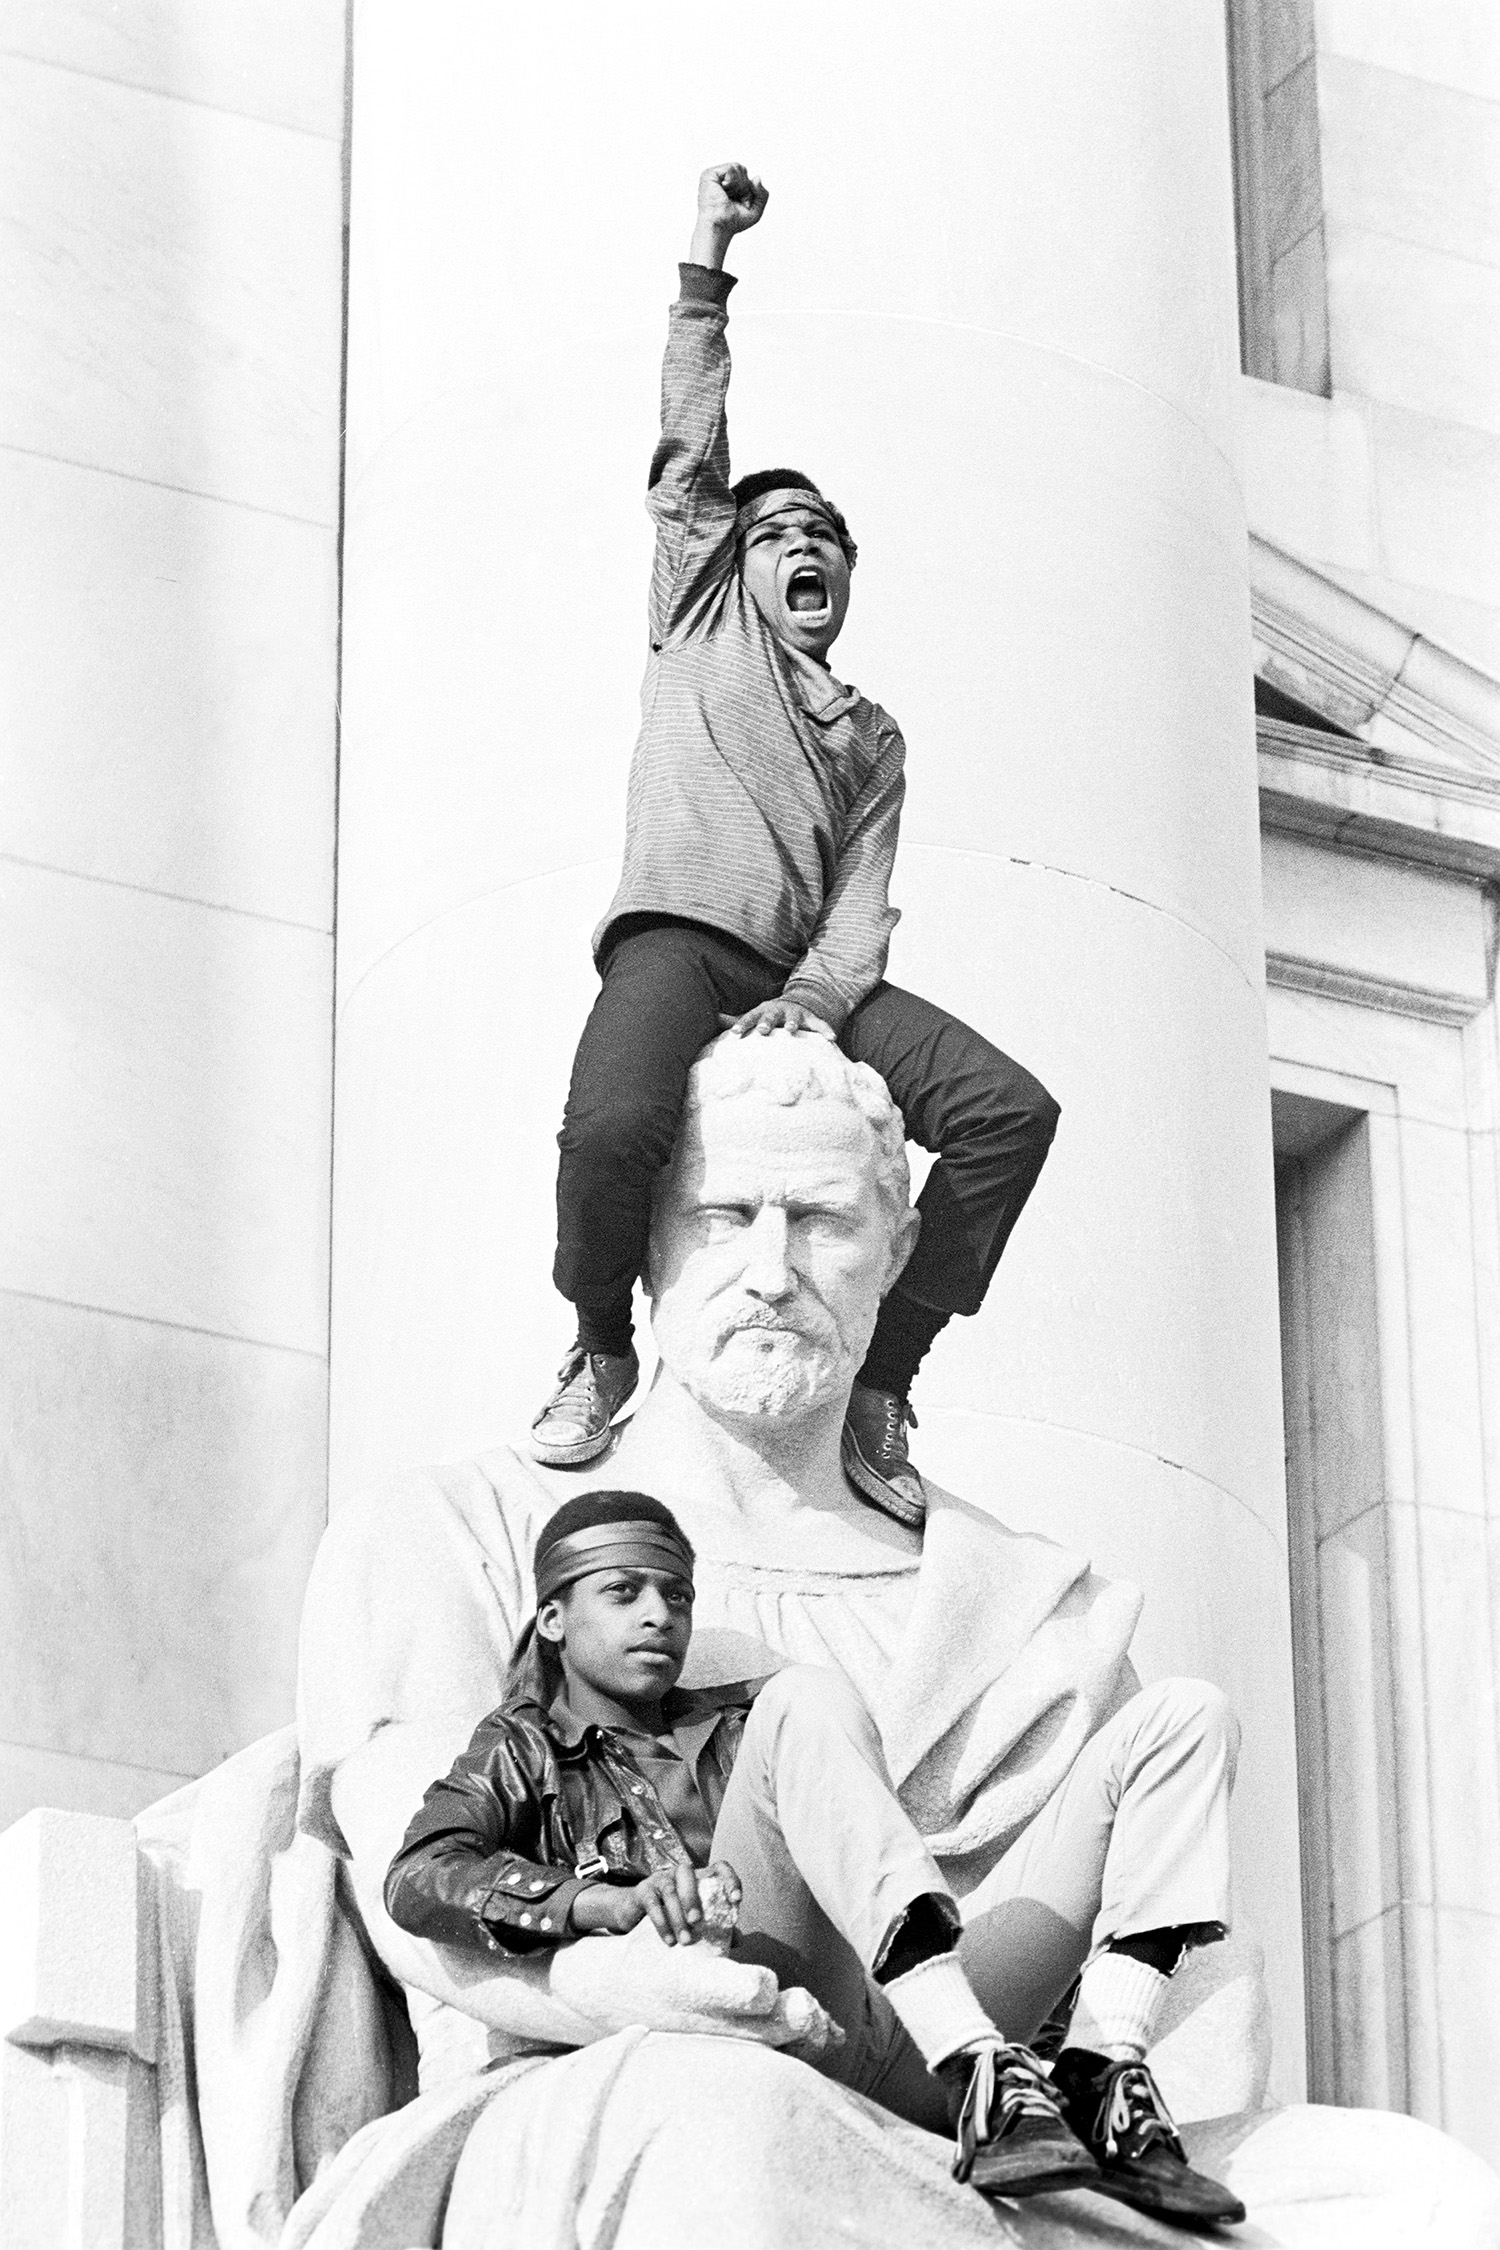 Image Above:A boy salutes the Panthers, New Haven County Courthouse, May 1, 1970.All images: Stephen Shames, Courtesy of Steven Kasher Gallery